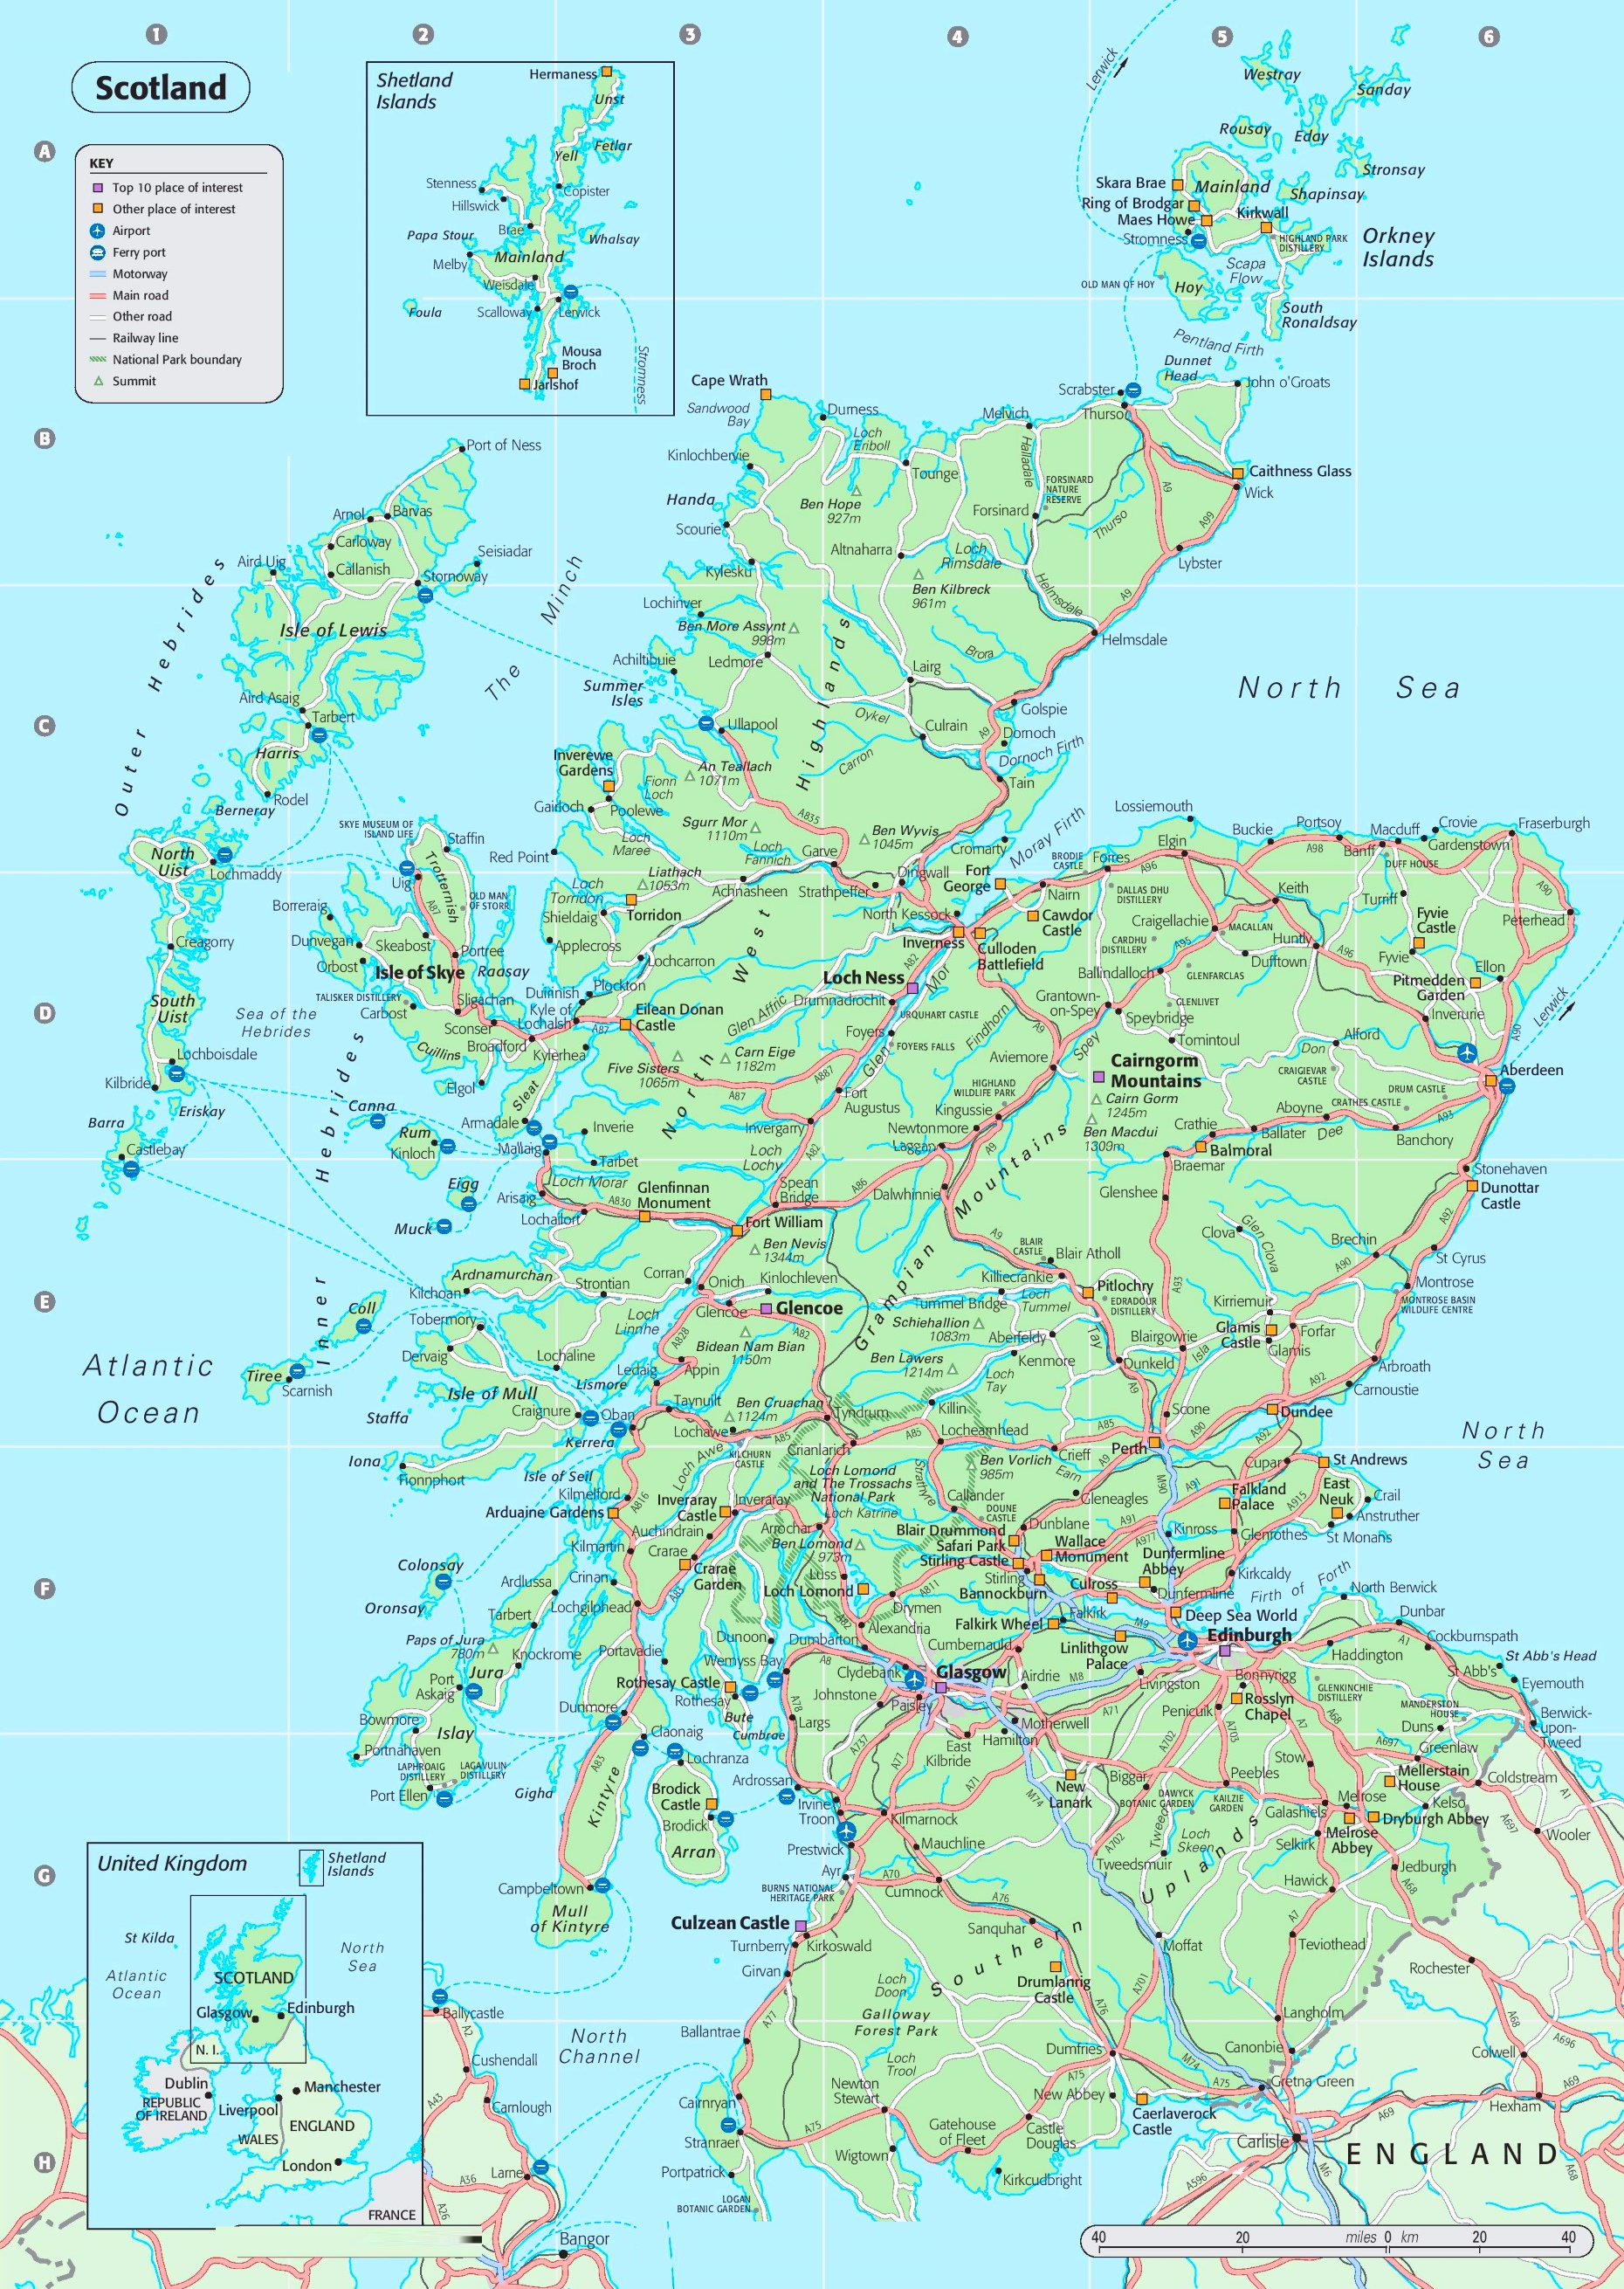 Detailed map of Scotland on sudan on map, belfast on map, sicily on map, rhine river on map, flanders on map, england on map, wales on map, europe on map, netherlands on map, isle of man on map, glasgow on map, balkans on map, switzerland on map, denmark on map, sardinia on map, edinburgh on map, scandinavia on map, slovenia on map, brussels on map, tibet on map,